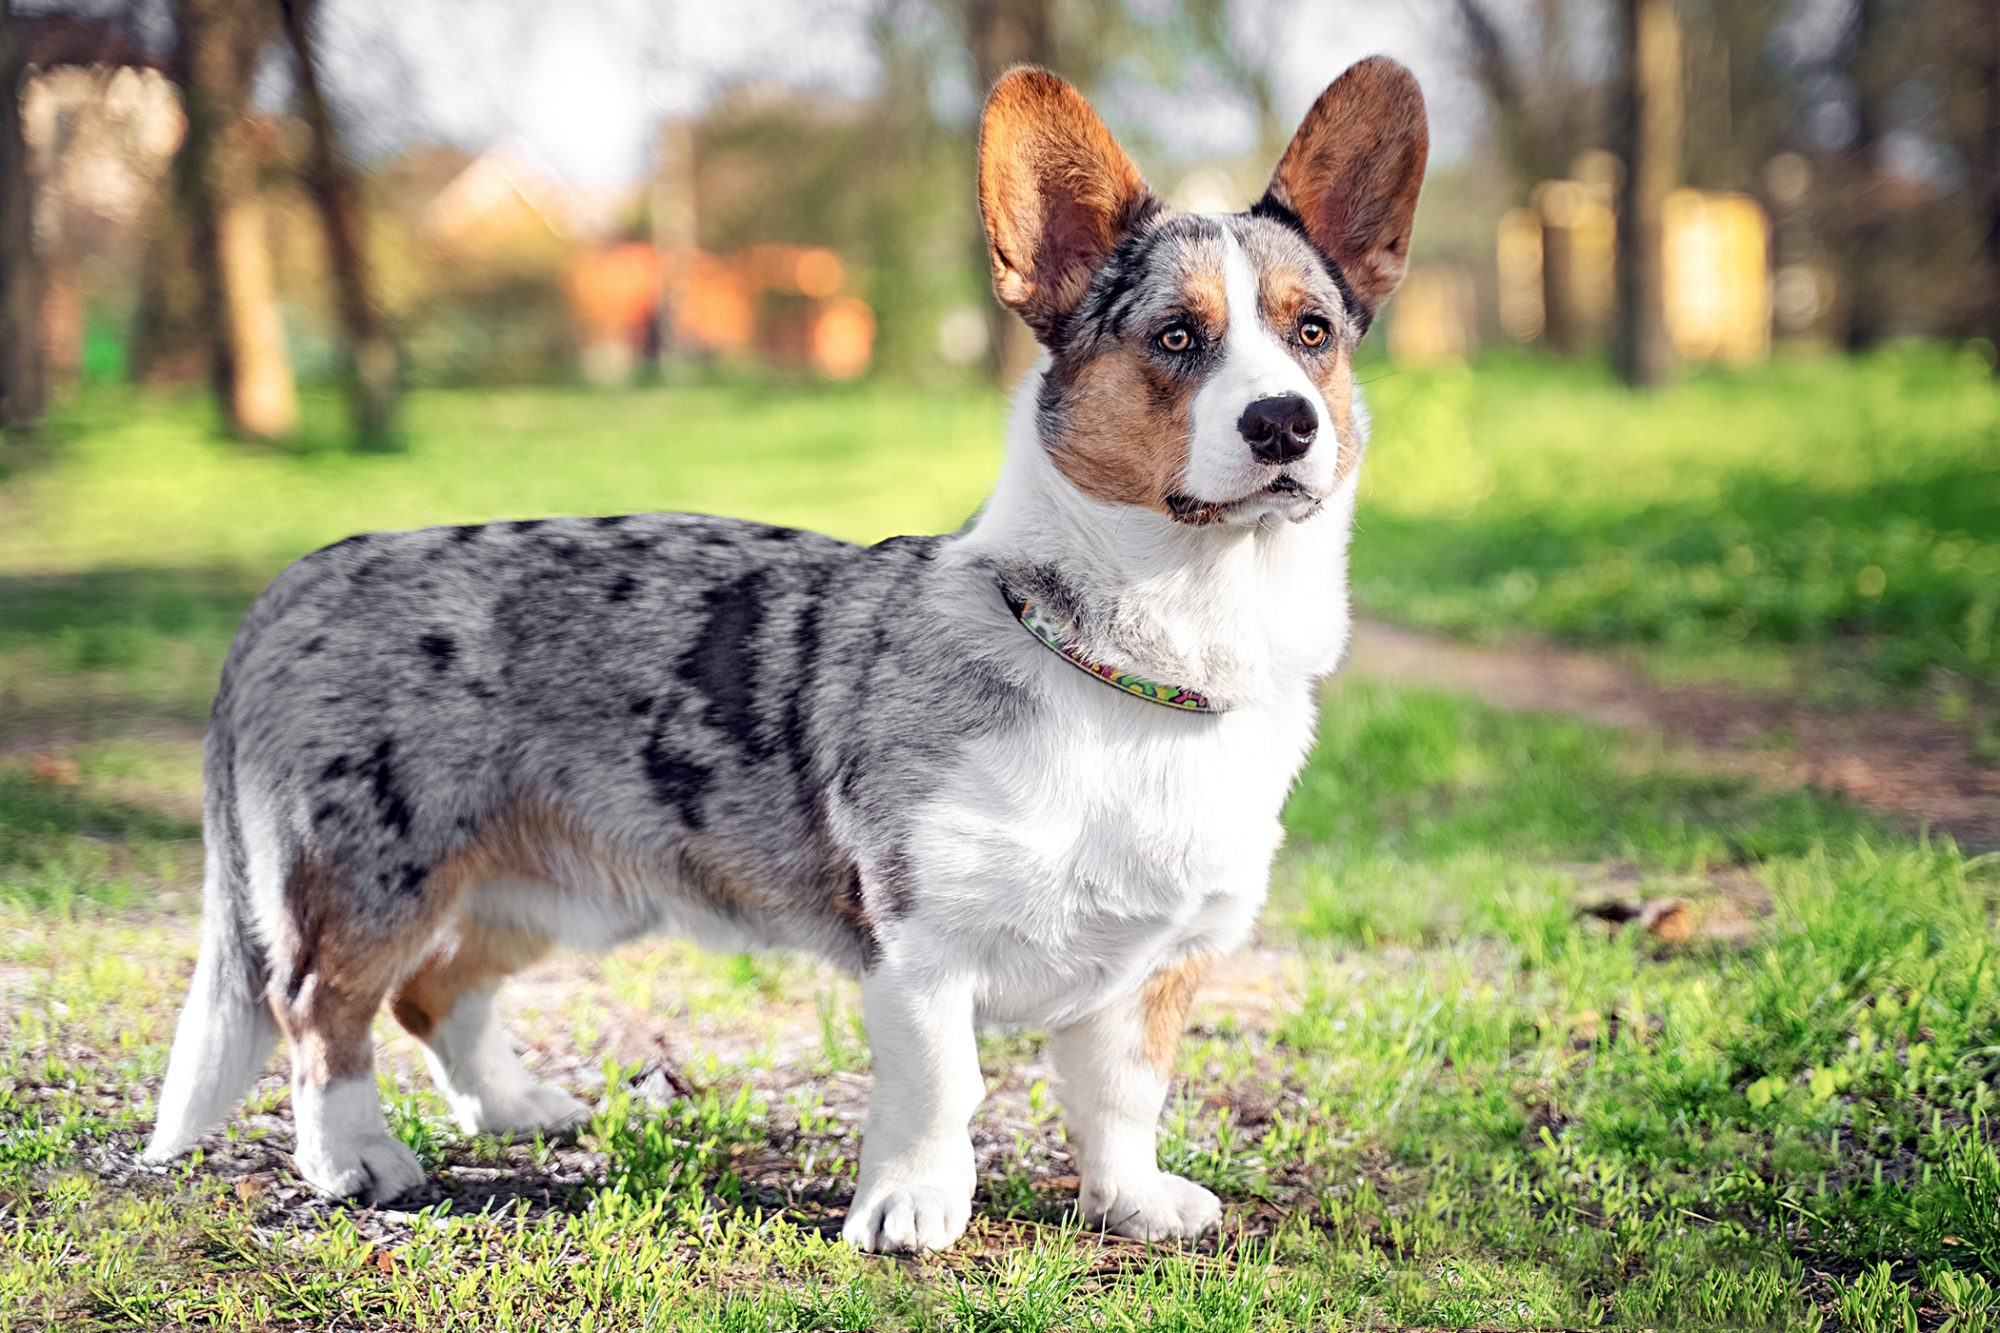 cardigan welsh corgi with grey and tan merle coat standing in a park